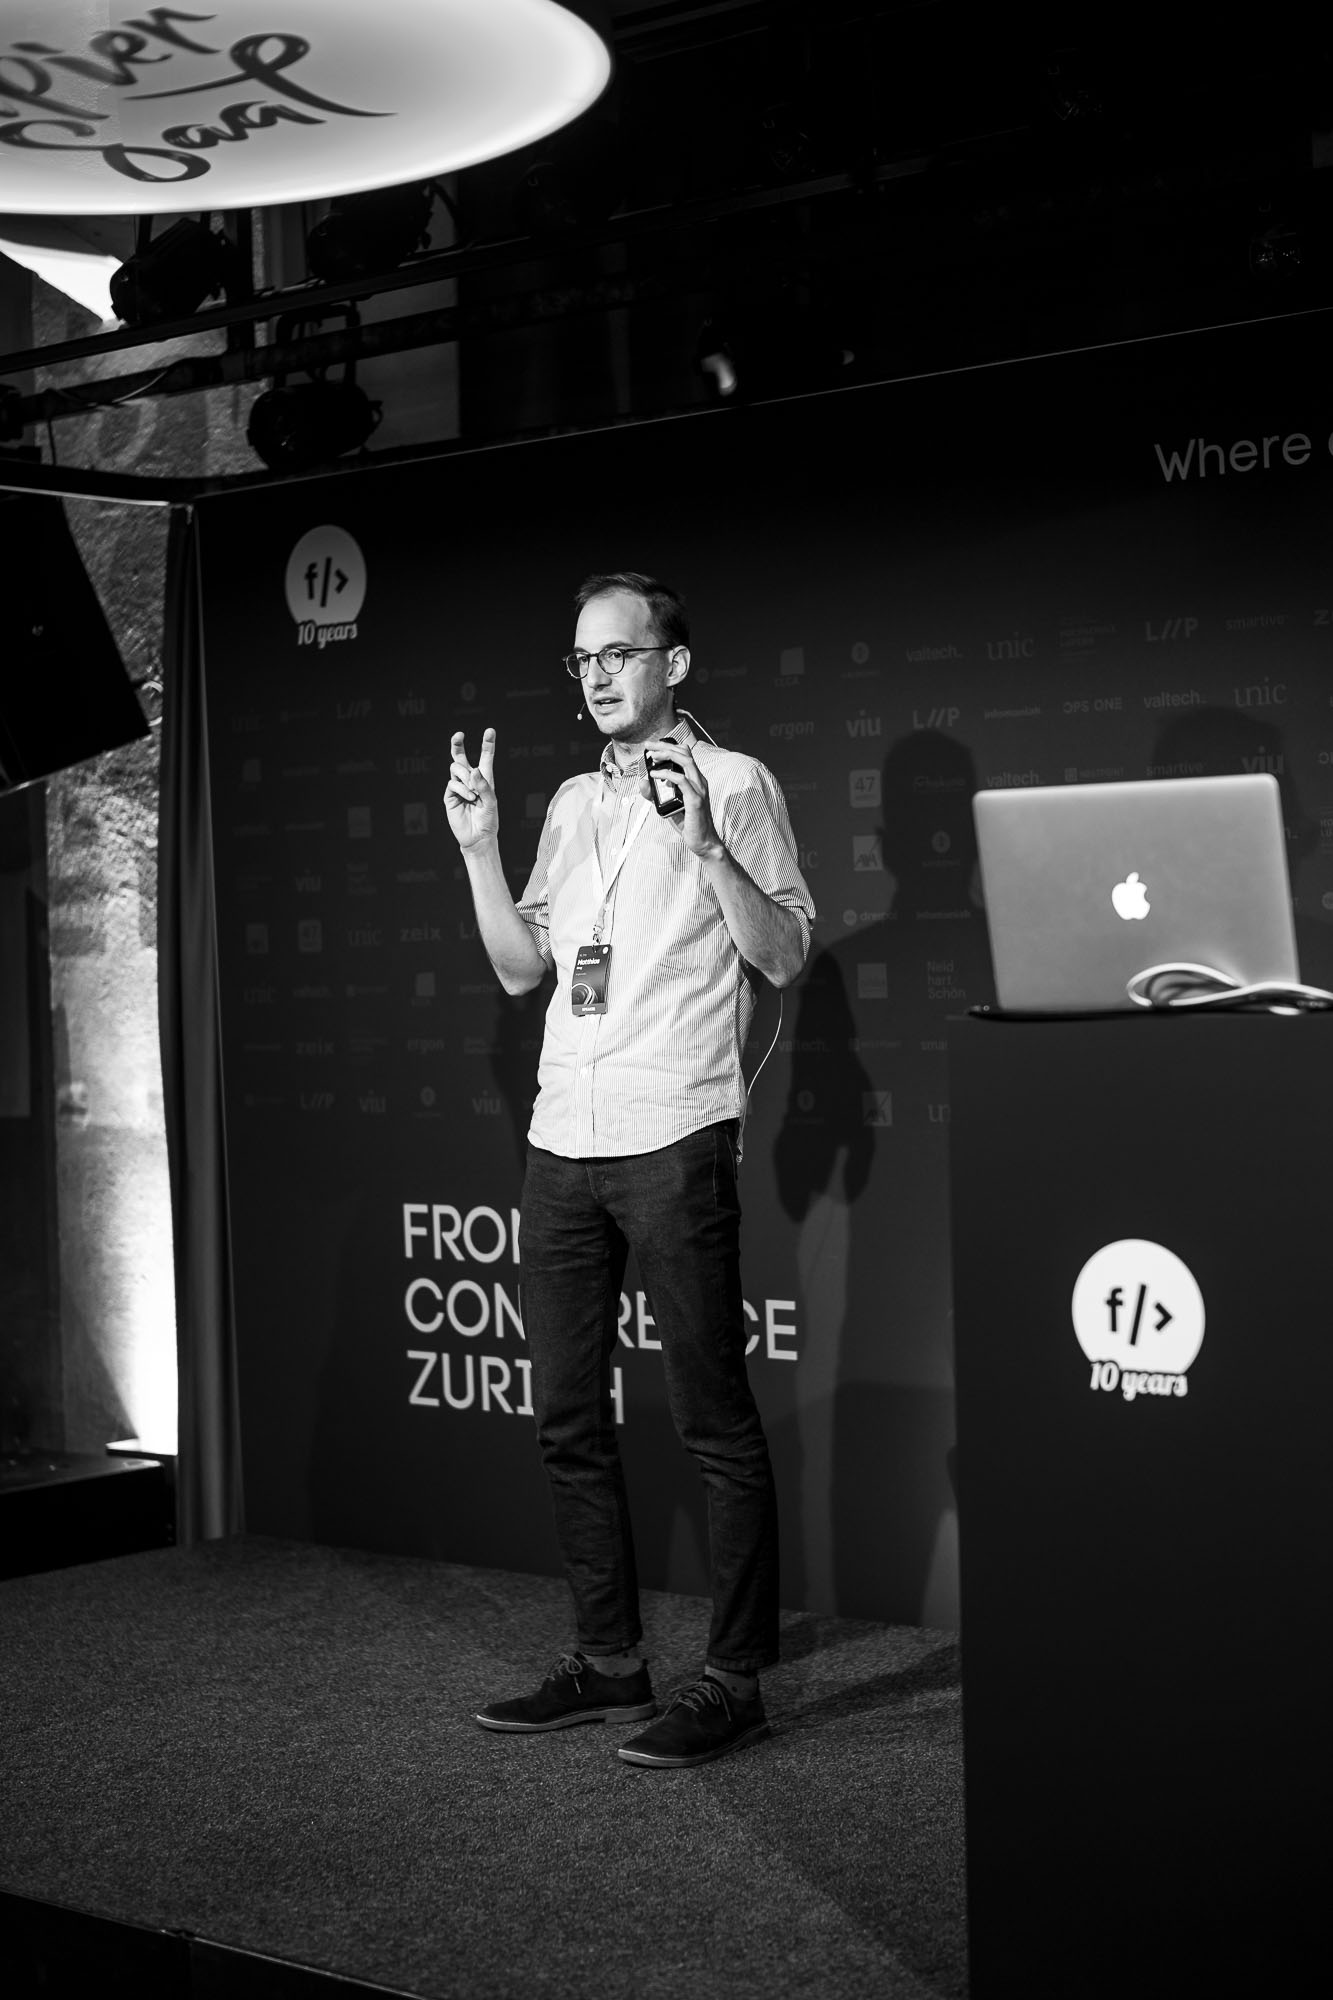 Matthias Karg on stage at Front Conference 2021